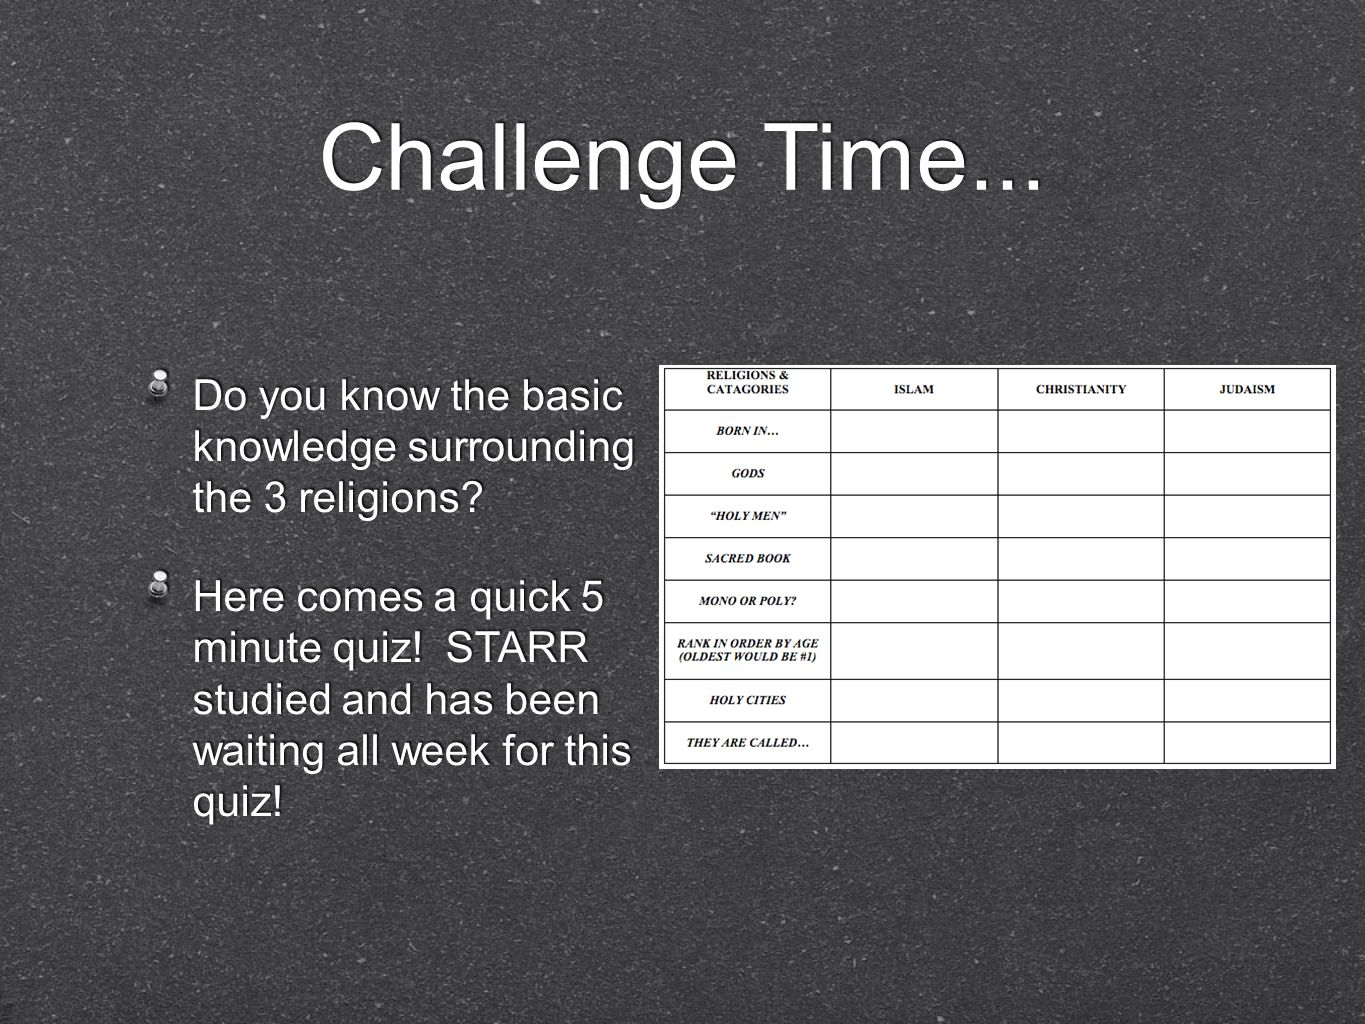 Challenge Time... Do you know the basic knowledge surrounding the 3 religions